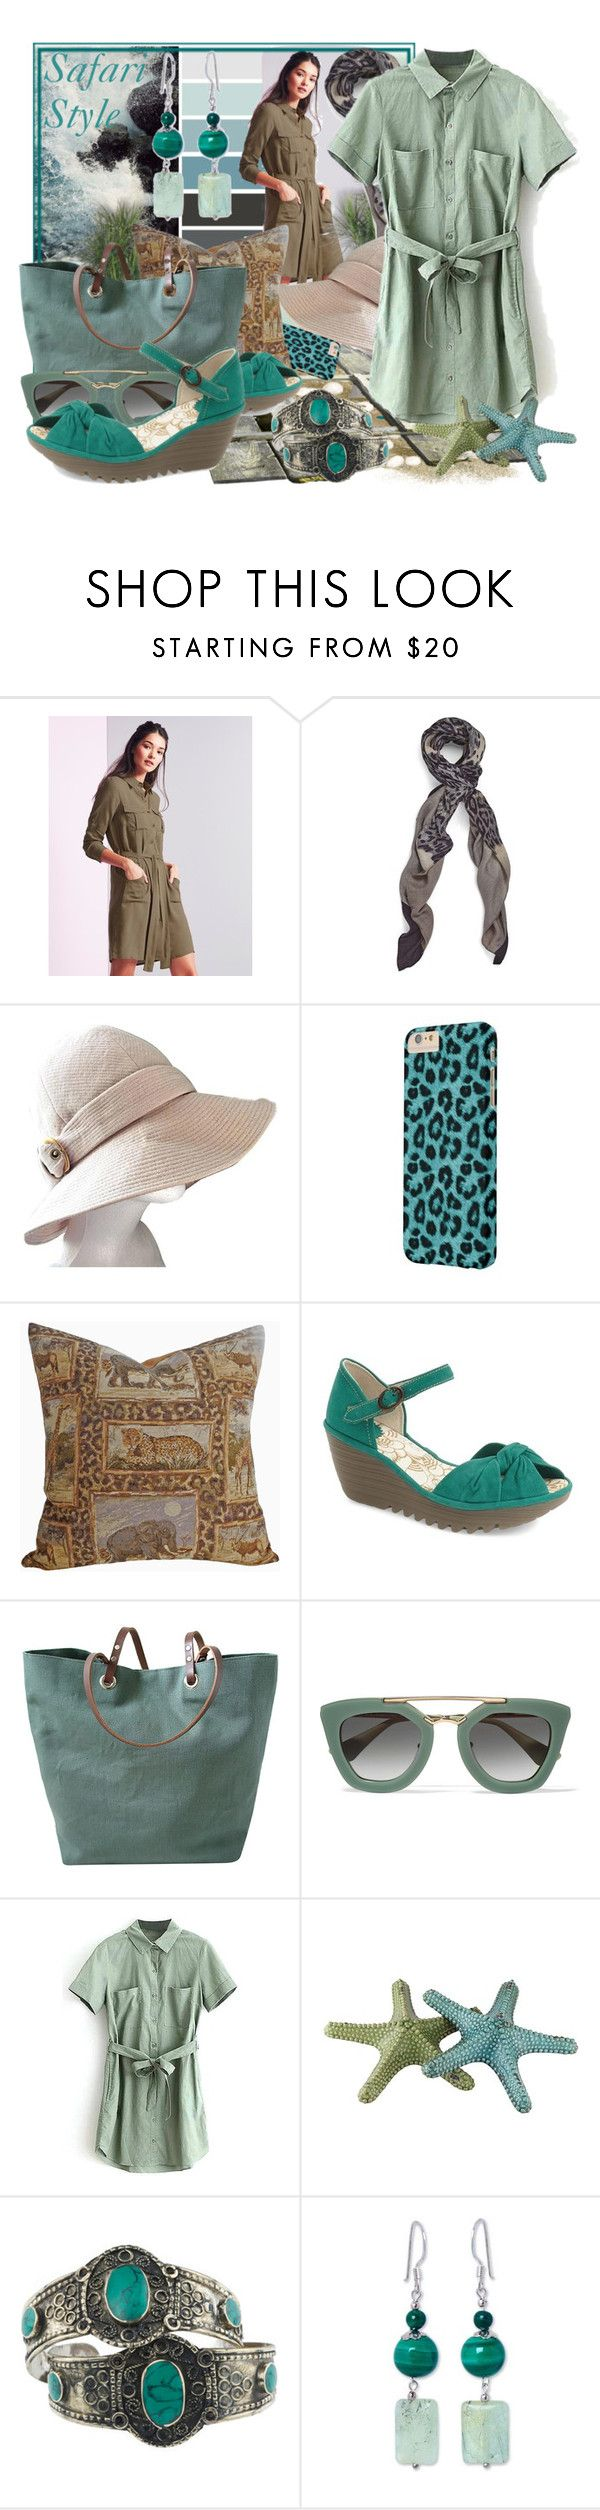 """Safari Style 11"" by tasha1973 ❤ liked on Polyvore featuring Lipsy, Yves Saint Laurent, Fly LONDON, Independent Reign, Prada, Crestview Collection, Rock 'N Rose and NOVICA"